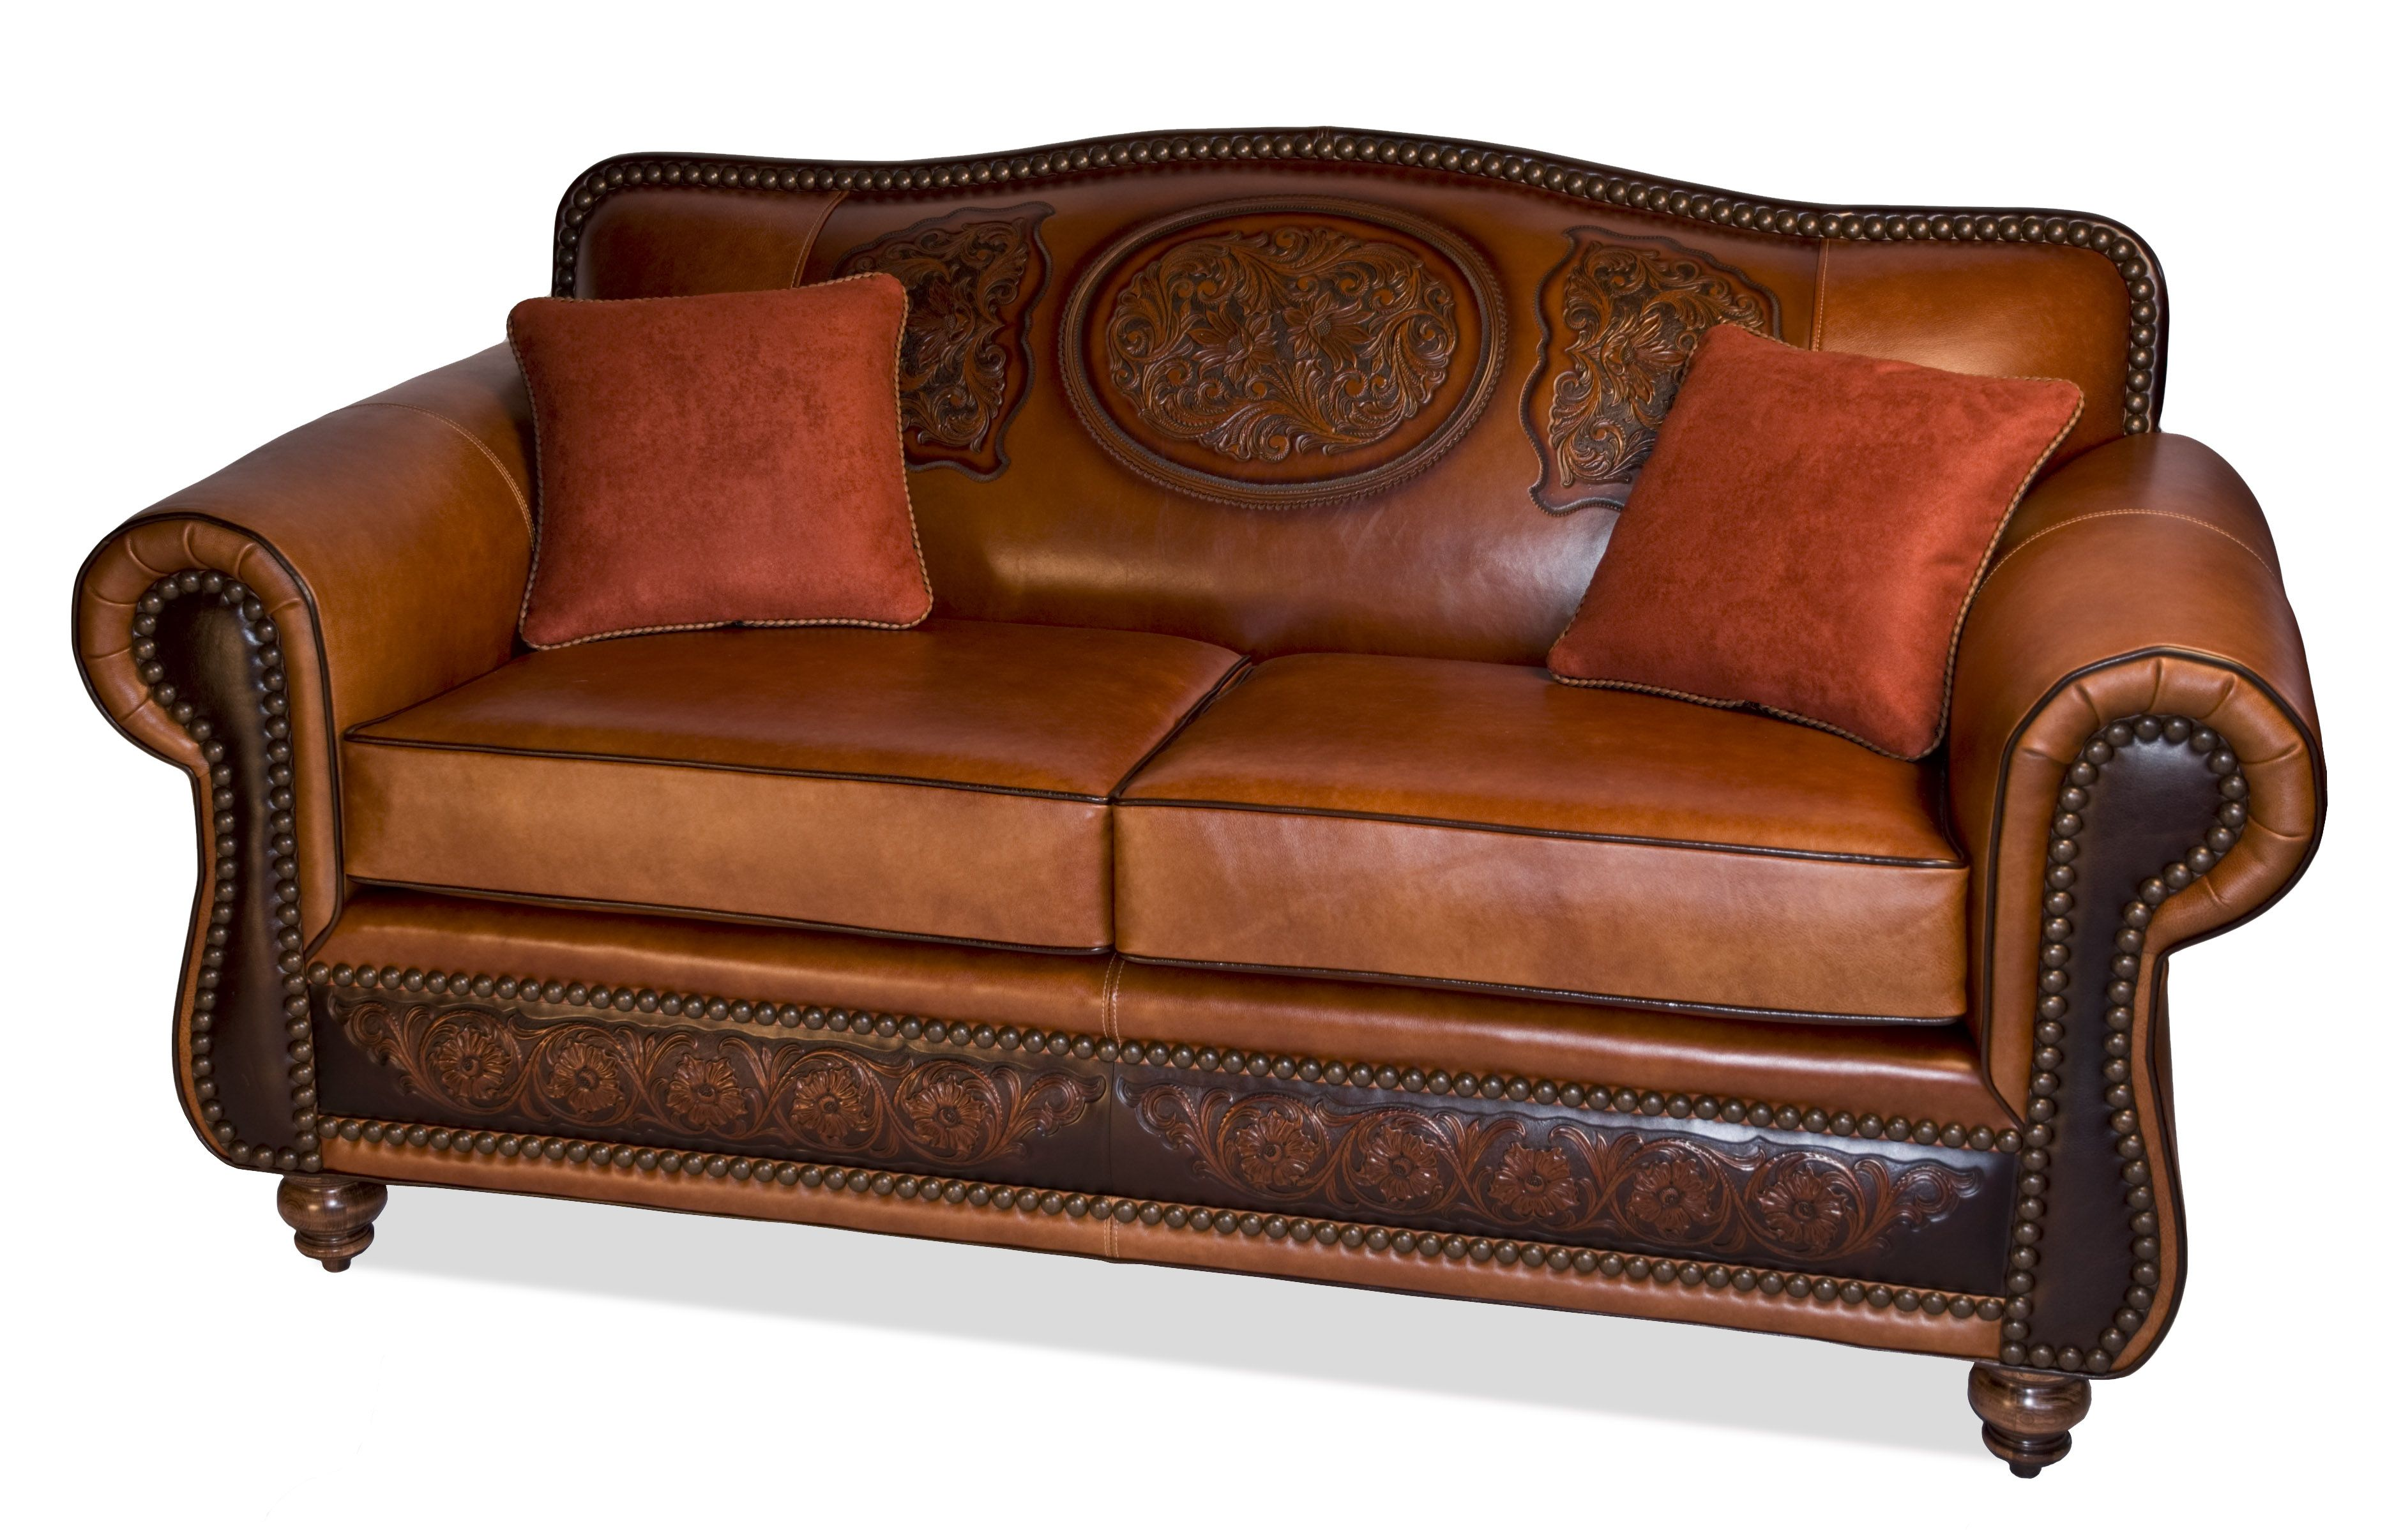 Attractive Cadillac Tight Back Love Seat With Tooling